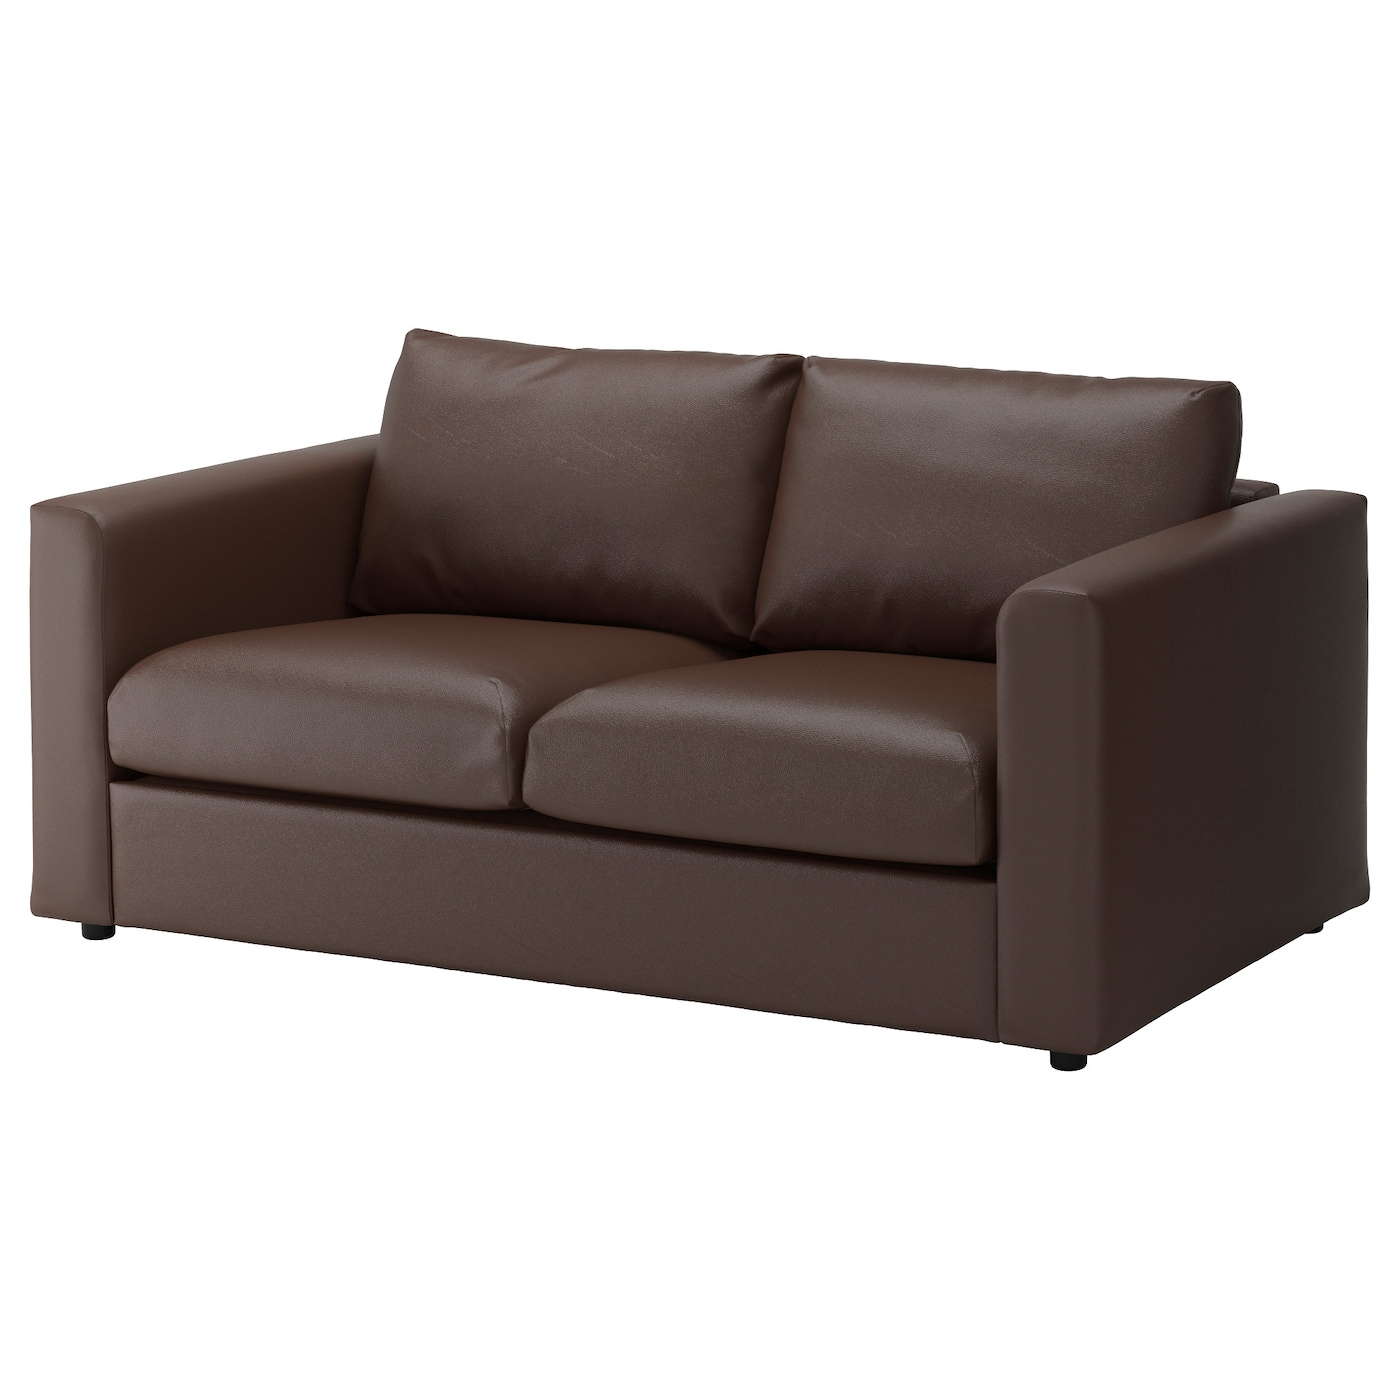 Vimle 2 seat sofa farsta dark brown ikea for Ikea couch planer